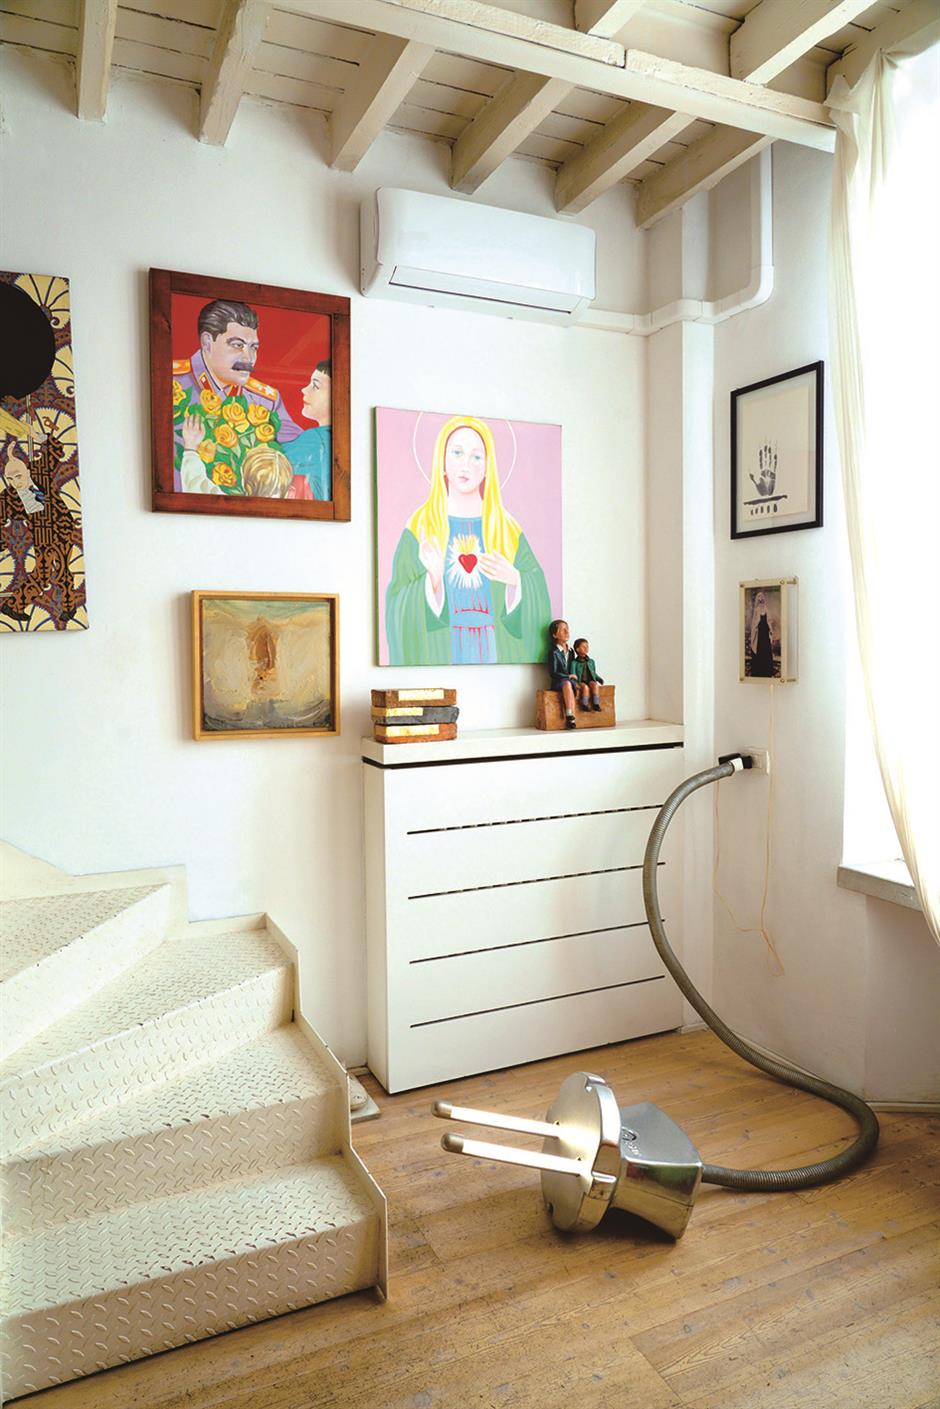 Aesthetic abode meets contemporary culture